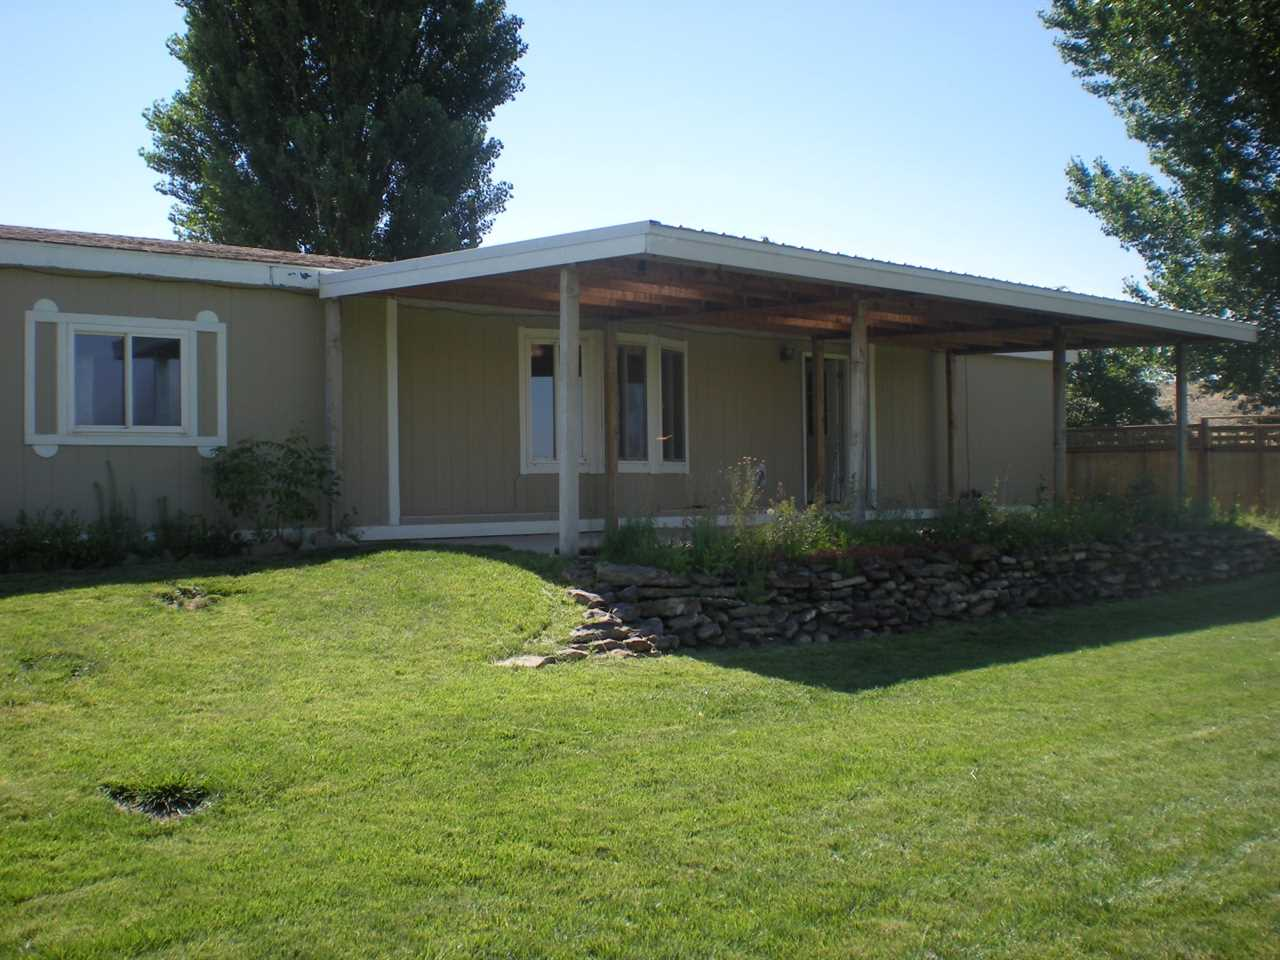 Single Family Home for Sale at 31695 State Highway 51 31695 State Highway 51 Bruneau, Idaho 83604